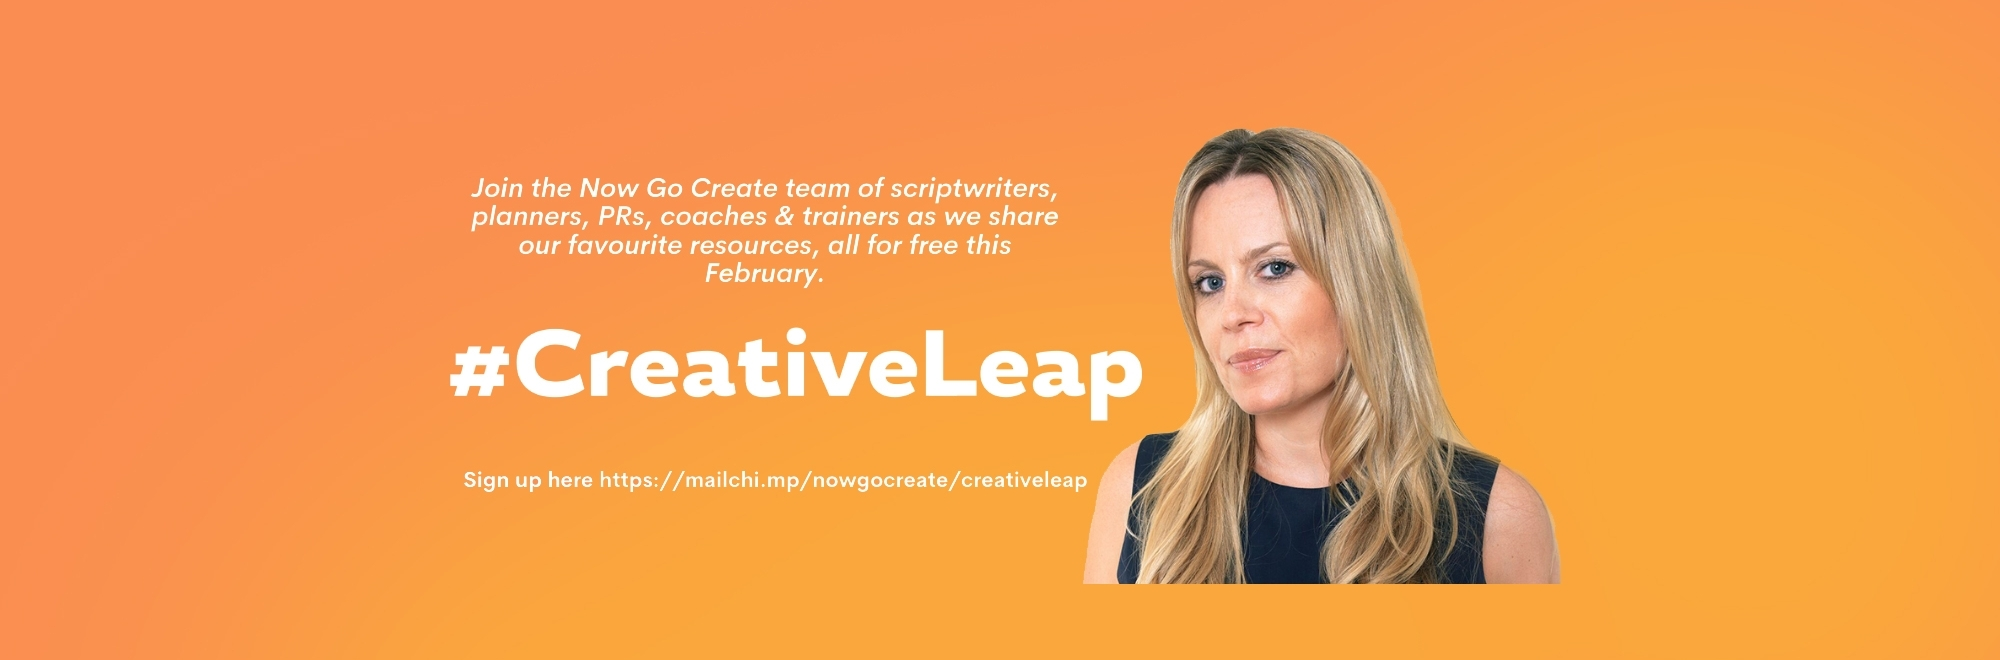 Join the Now Go Create team of scriptwriters, planners, PRs, coaches and trainers as we share our favourite resources - all for free this Feb!